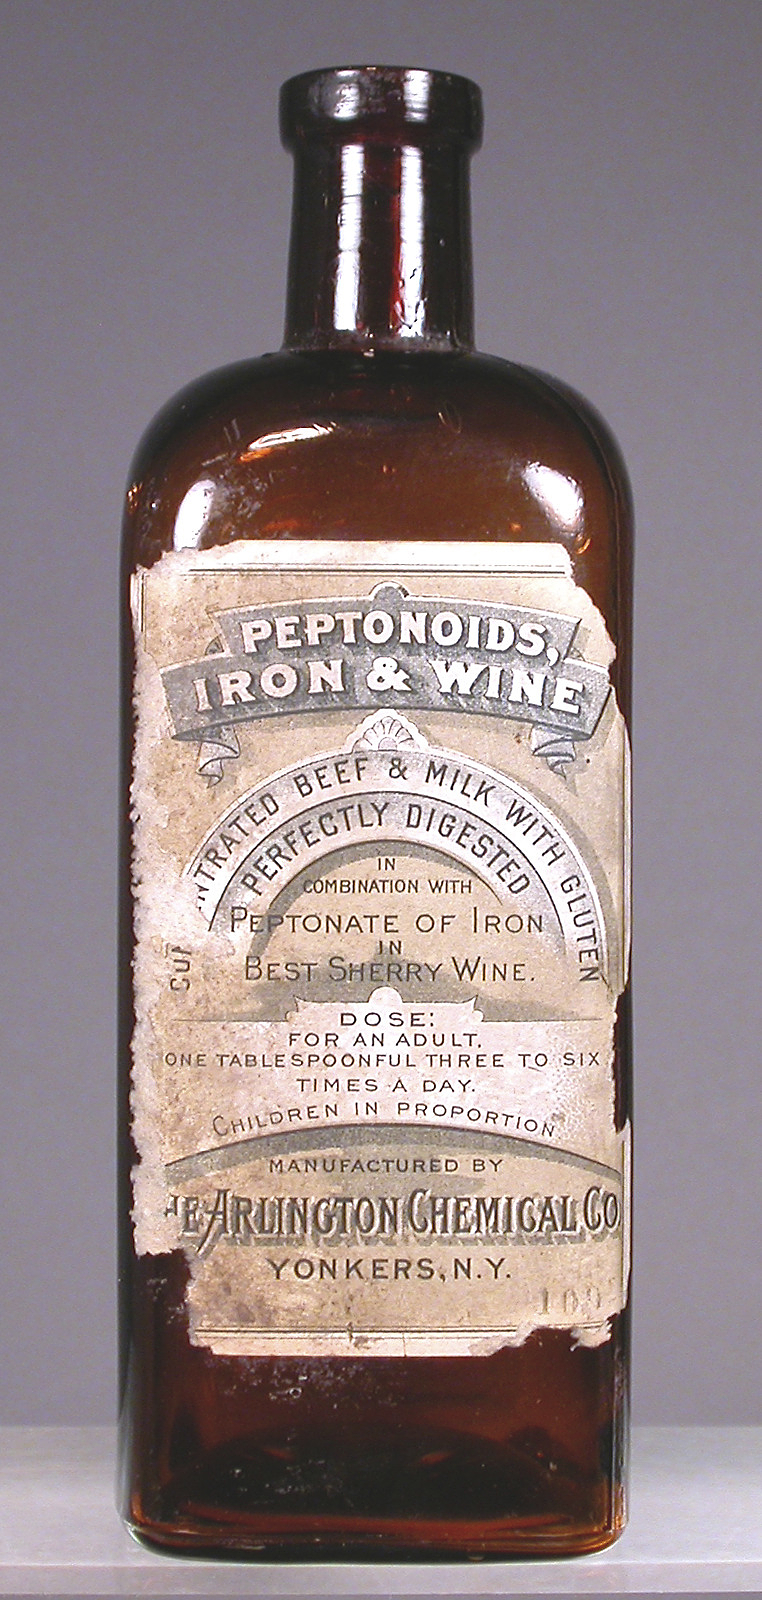 Patent medicine. OTC preparation. Peptonoids, Iron and Wine.